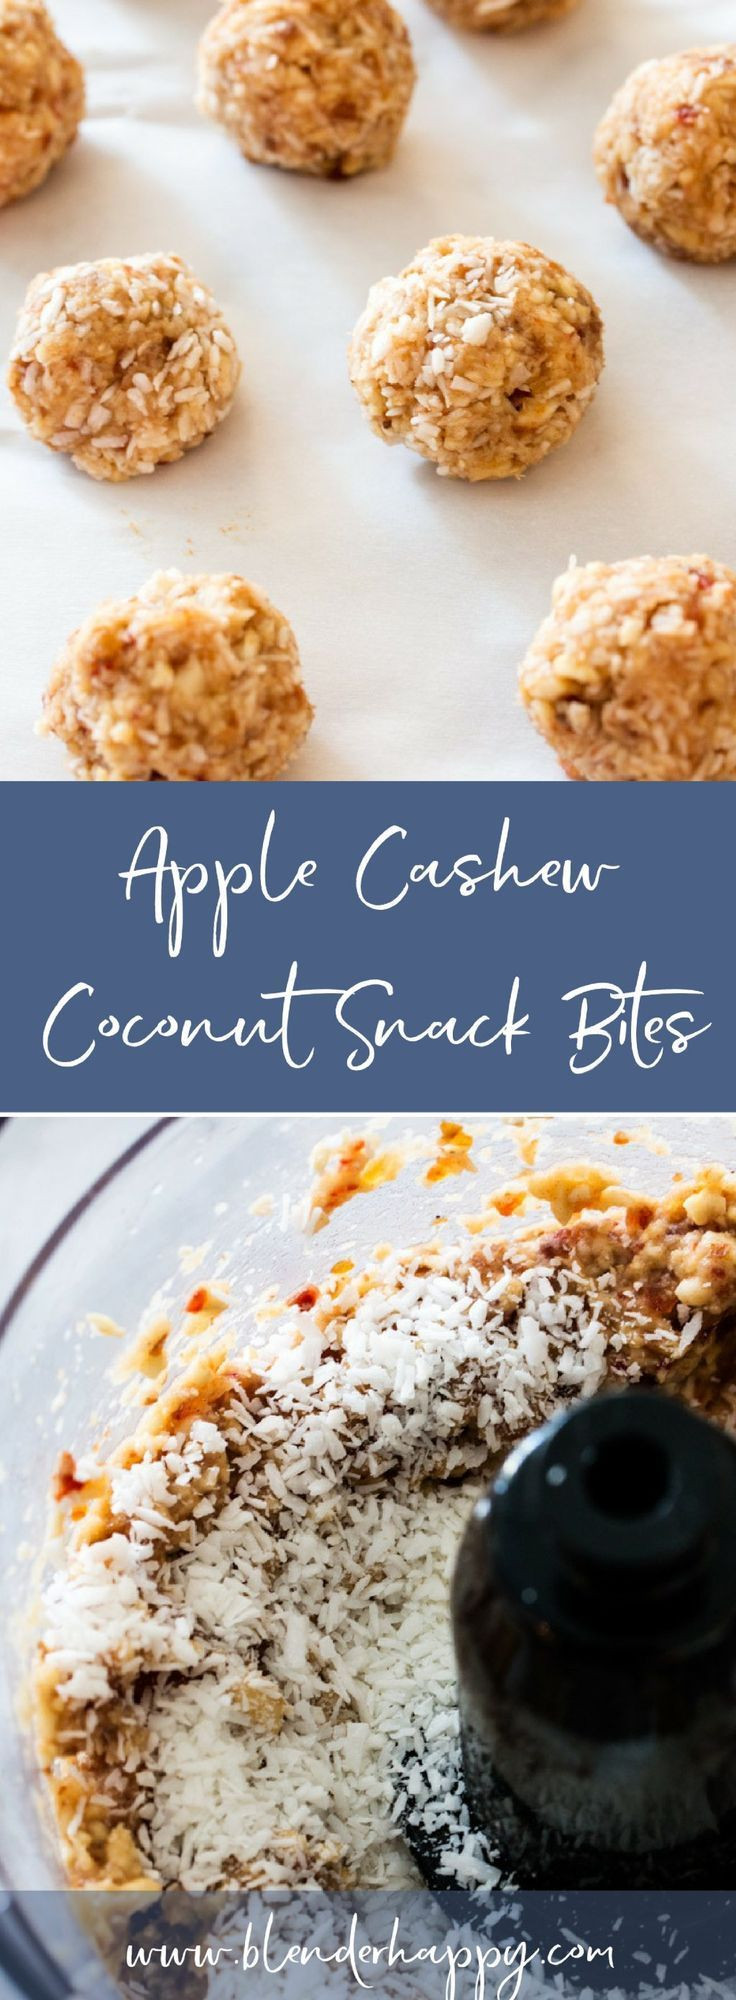 These little yet oh-so flavorful snack bites get their boost from unsweetened apple sauce, medjool dates, cashews and coconut.  Super easy to make and even easier to enjoy. Gluten Free, Dairy Free, Whole30 and Paleo Friendly. via /blenderhappy/